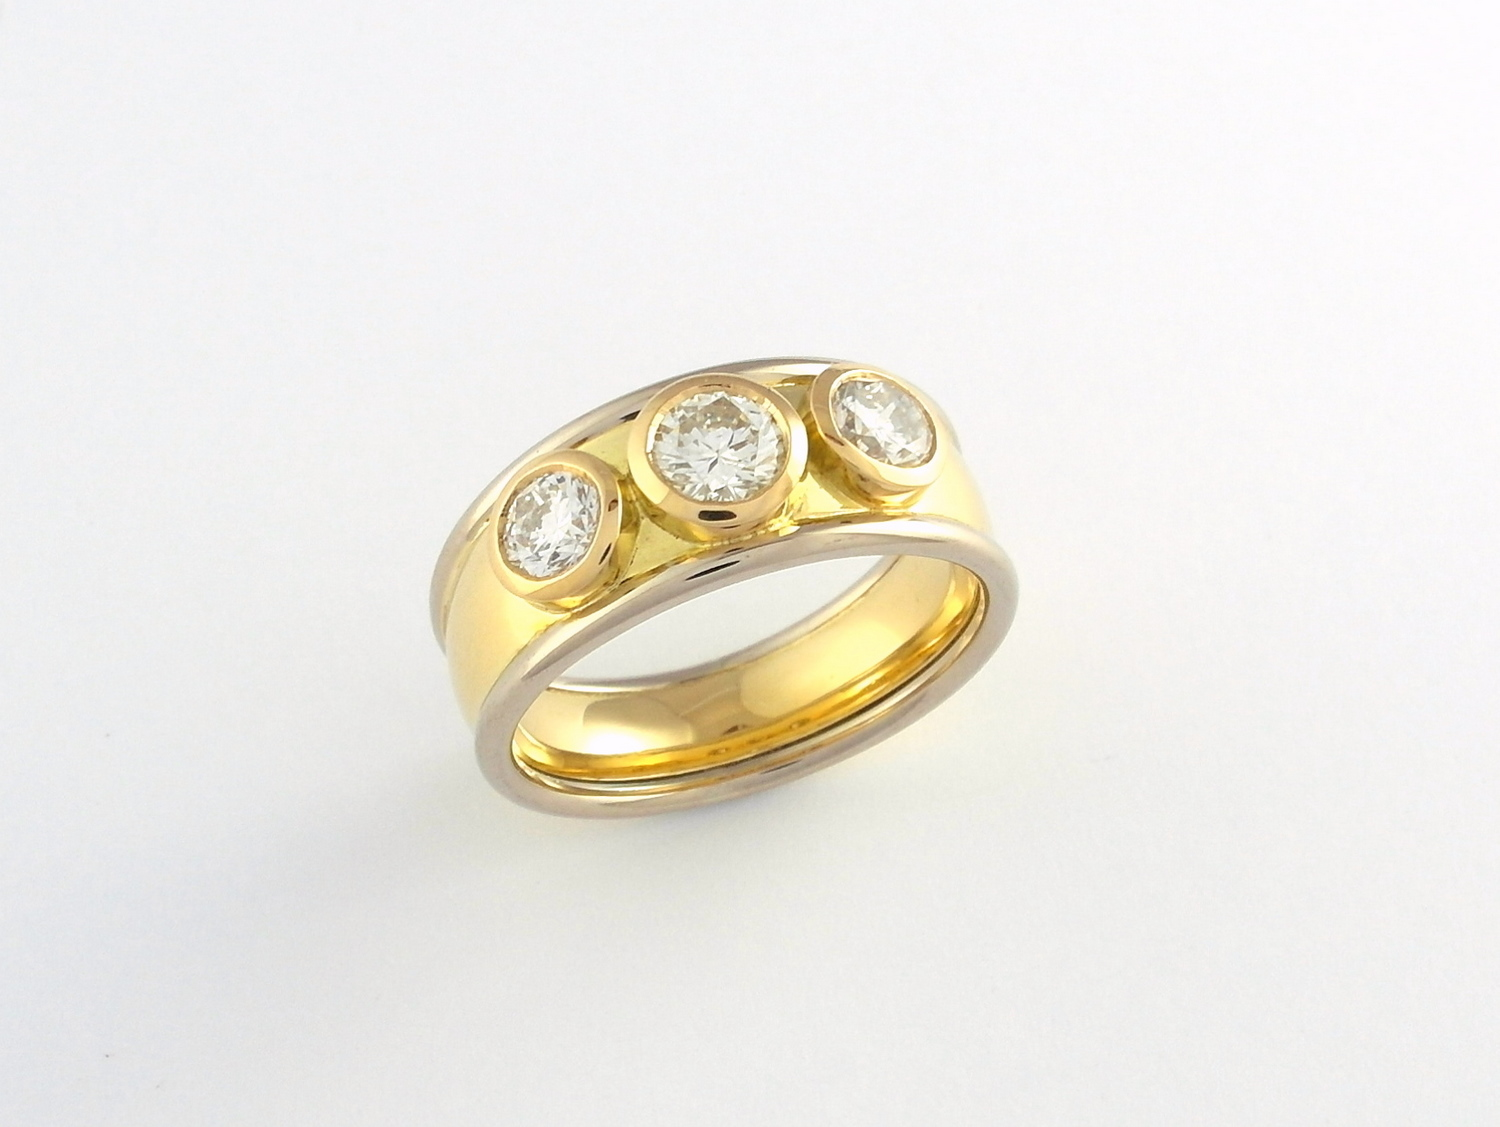 18ct white and yellow gold band set with 3 brilliant cut diamonds